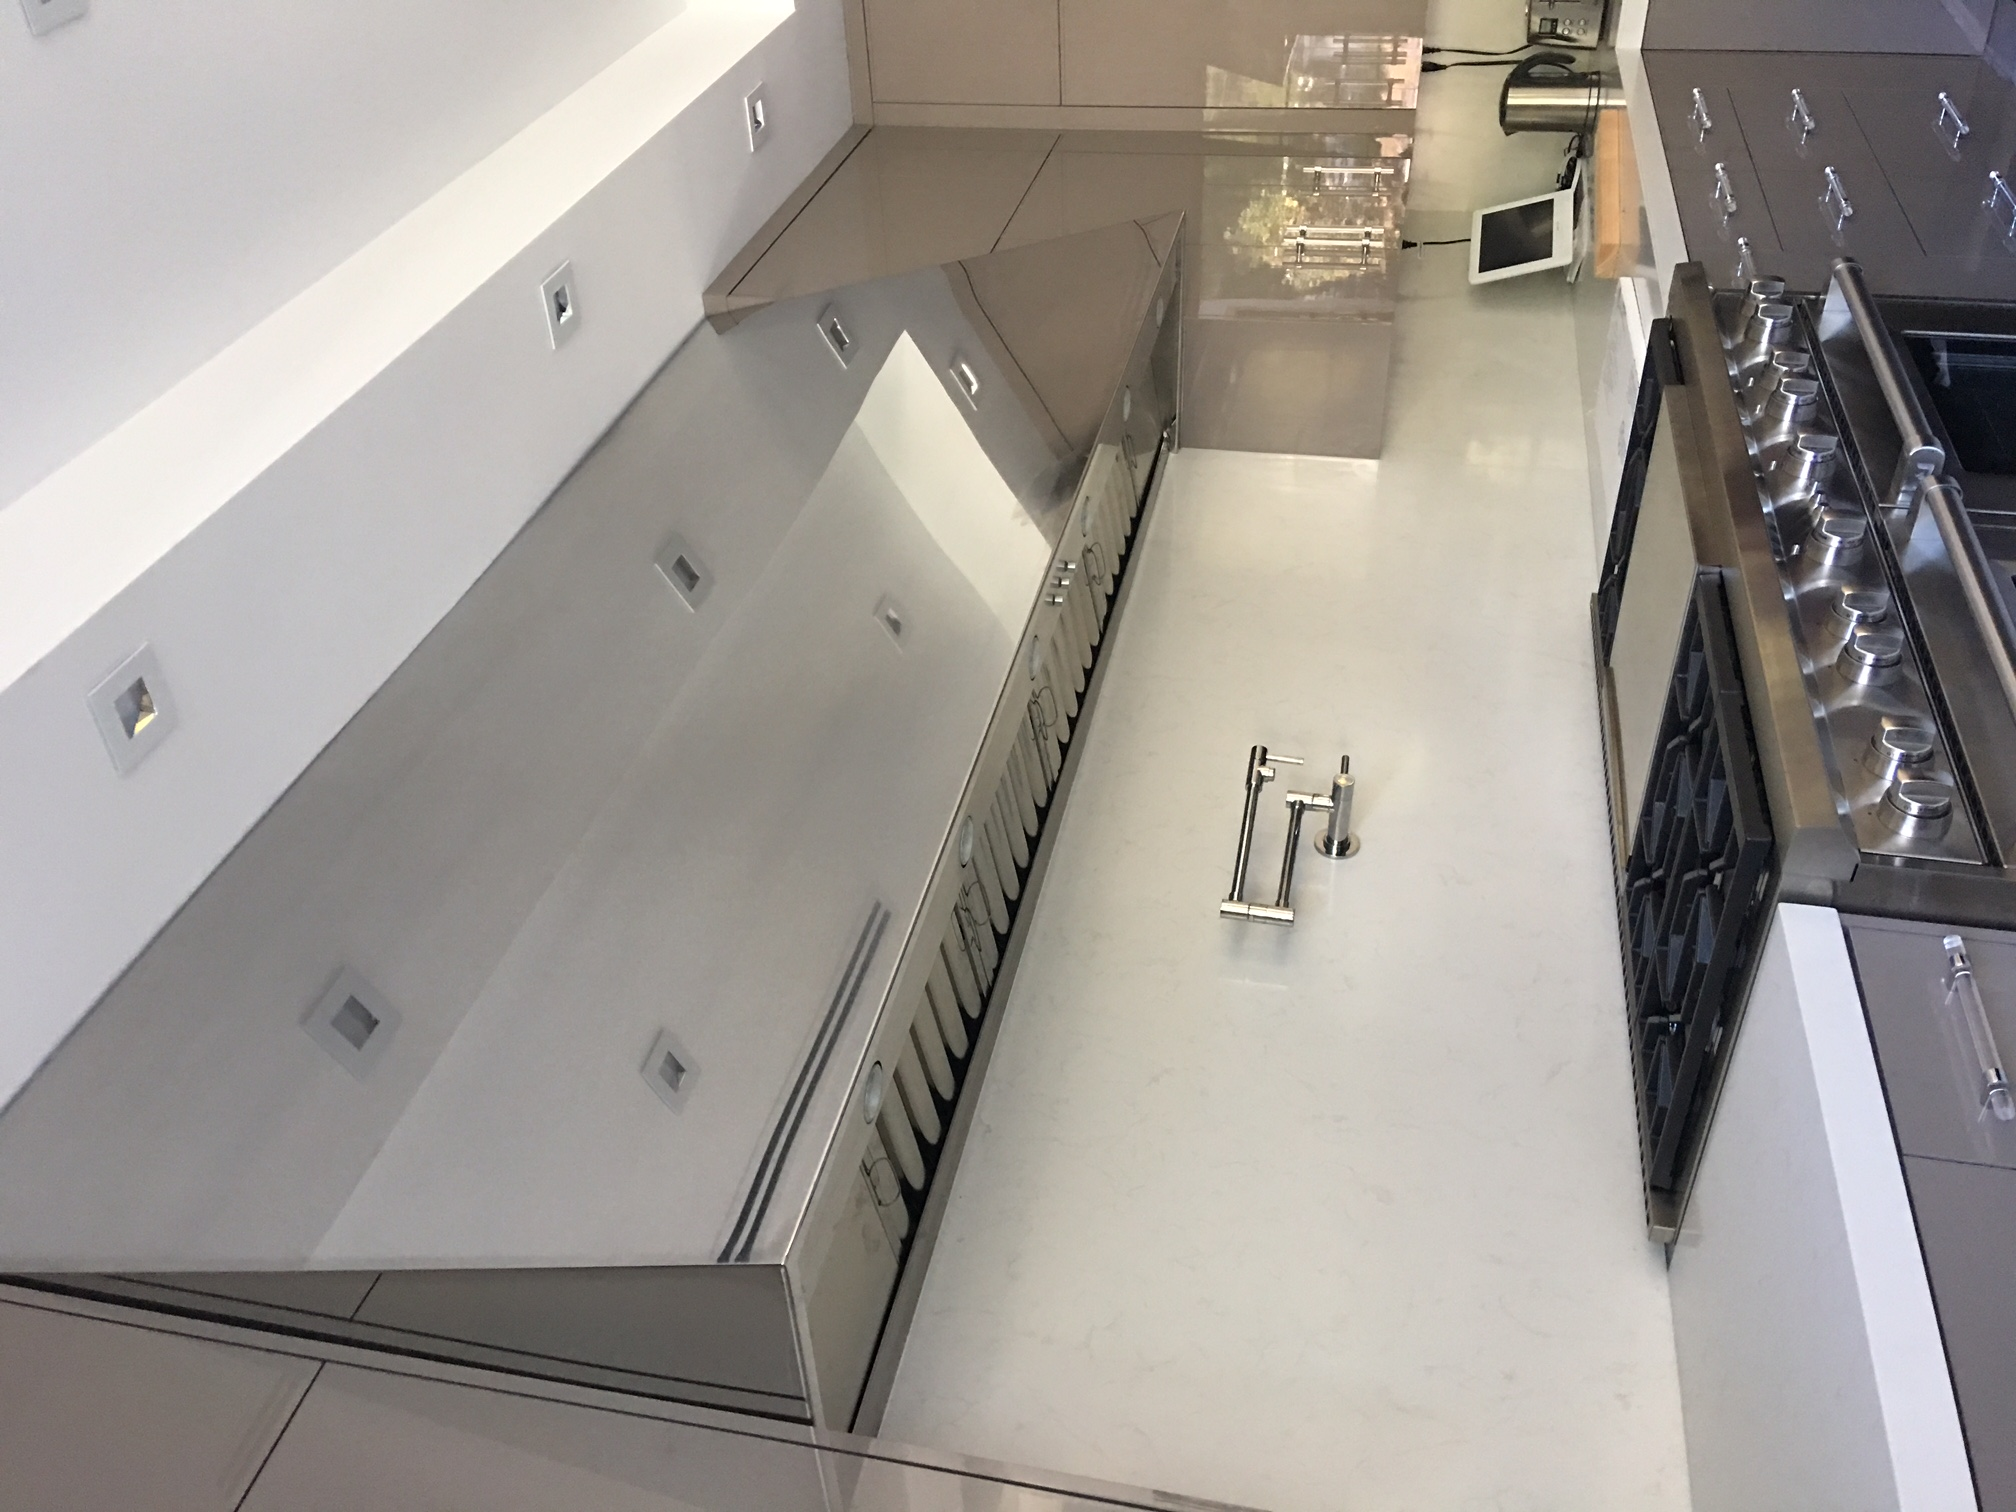 Mirrored stainless steel range hood